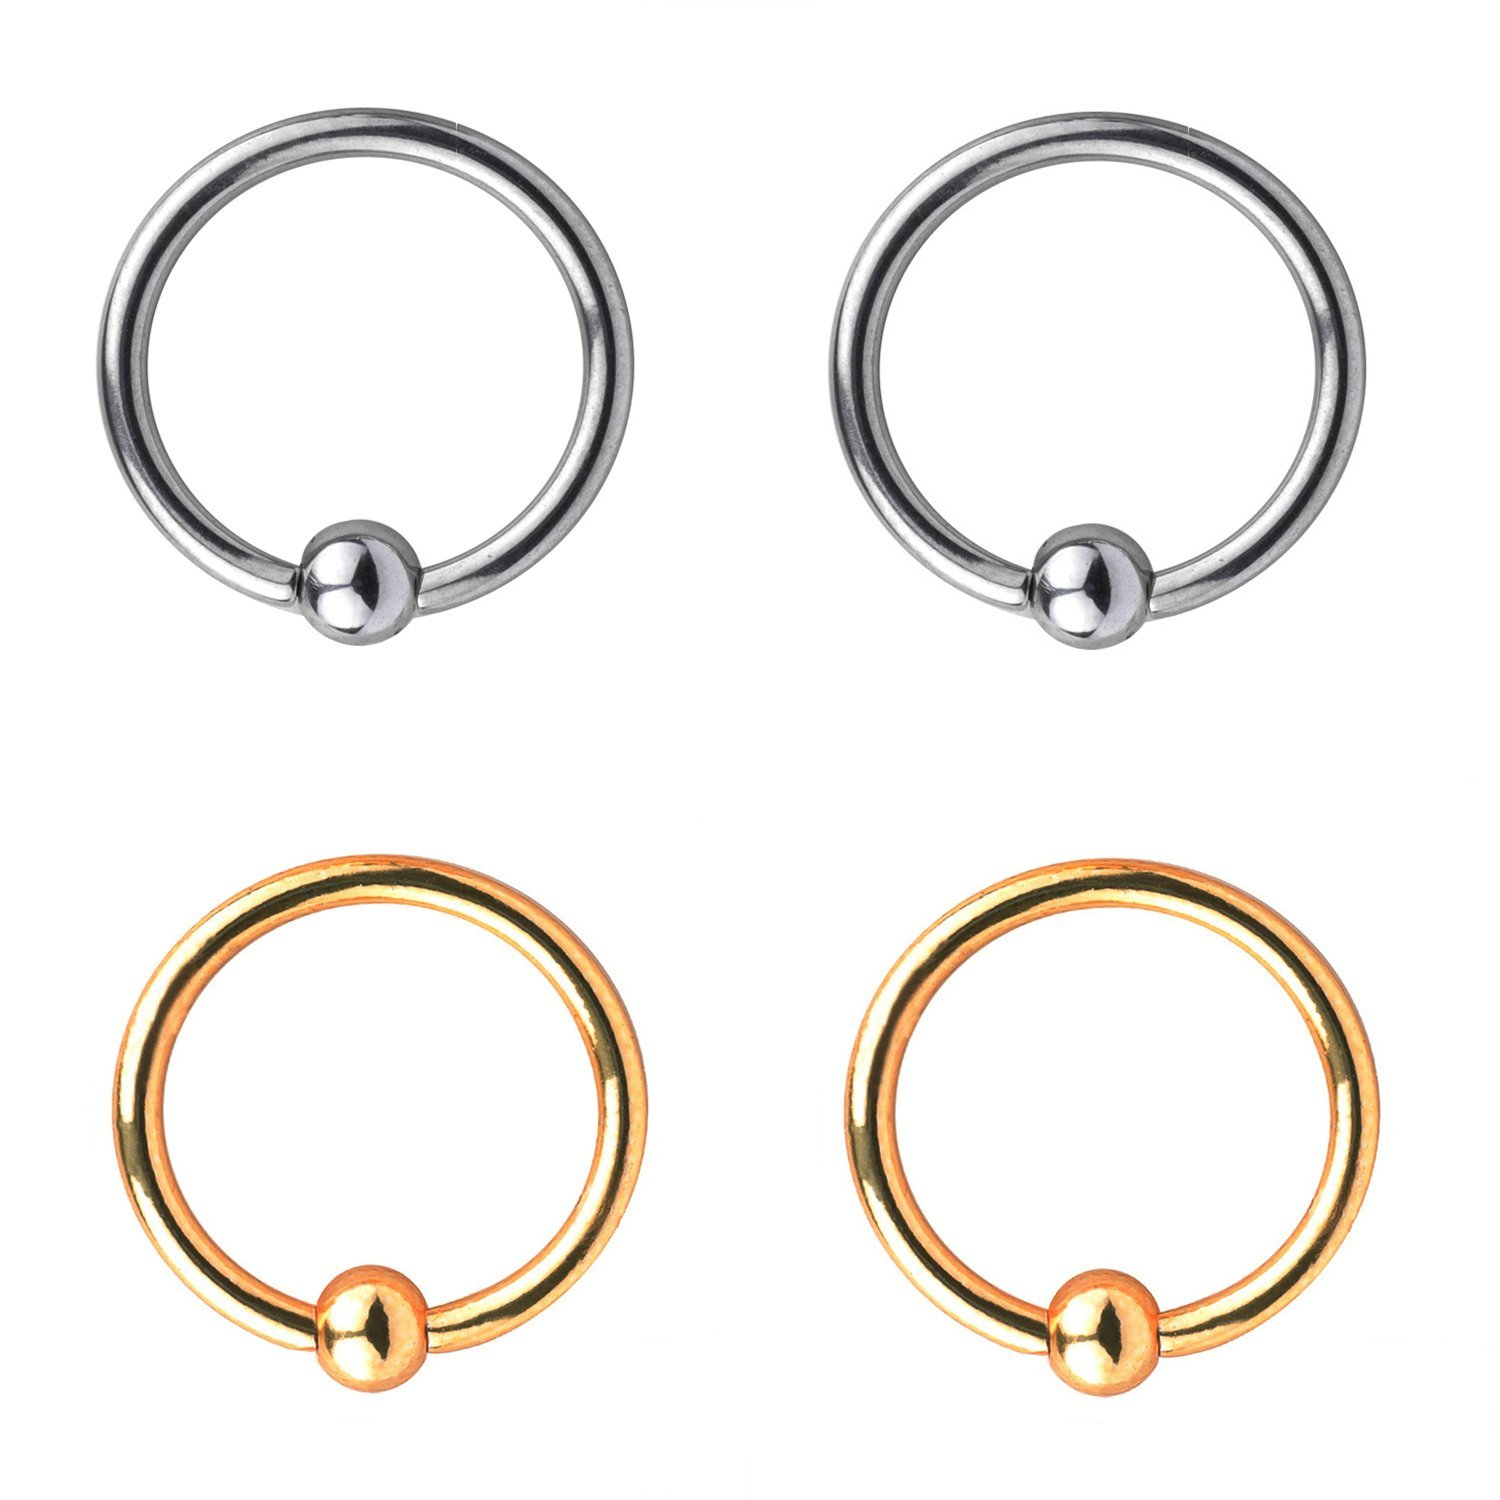 RJRK 16G Stainless Steel Hoop Nose Ring Ear Piercing Body Jewelry for Womens Mens 8mm